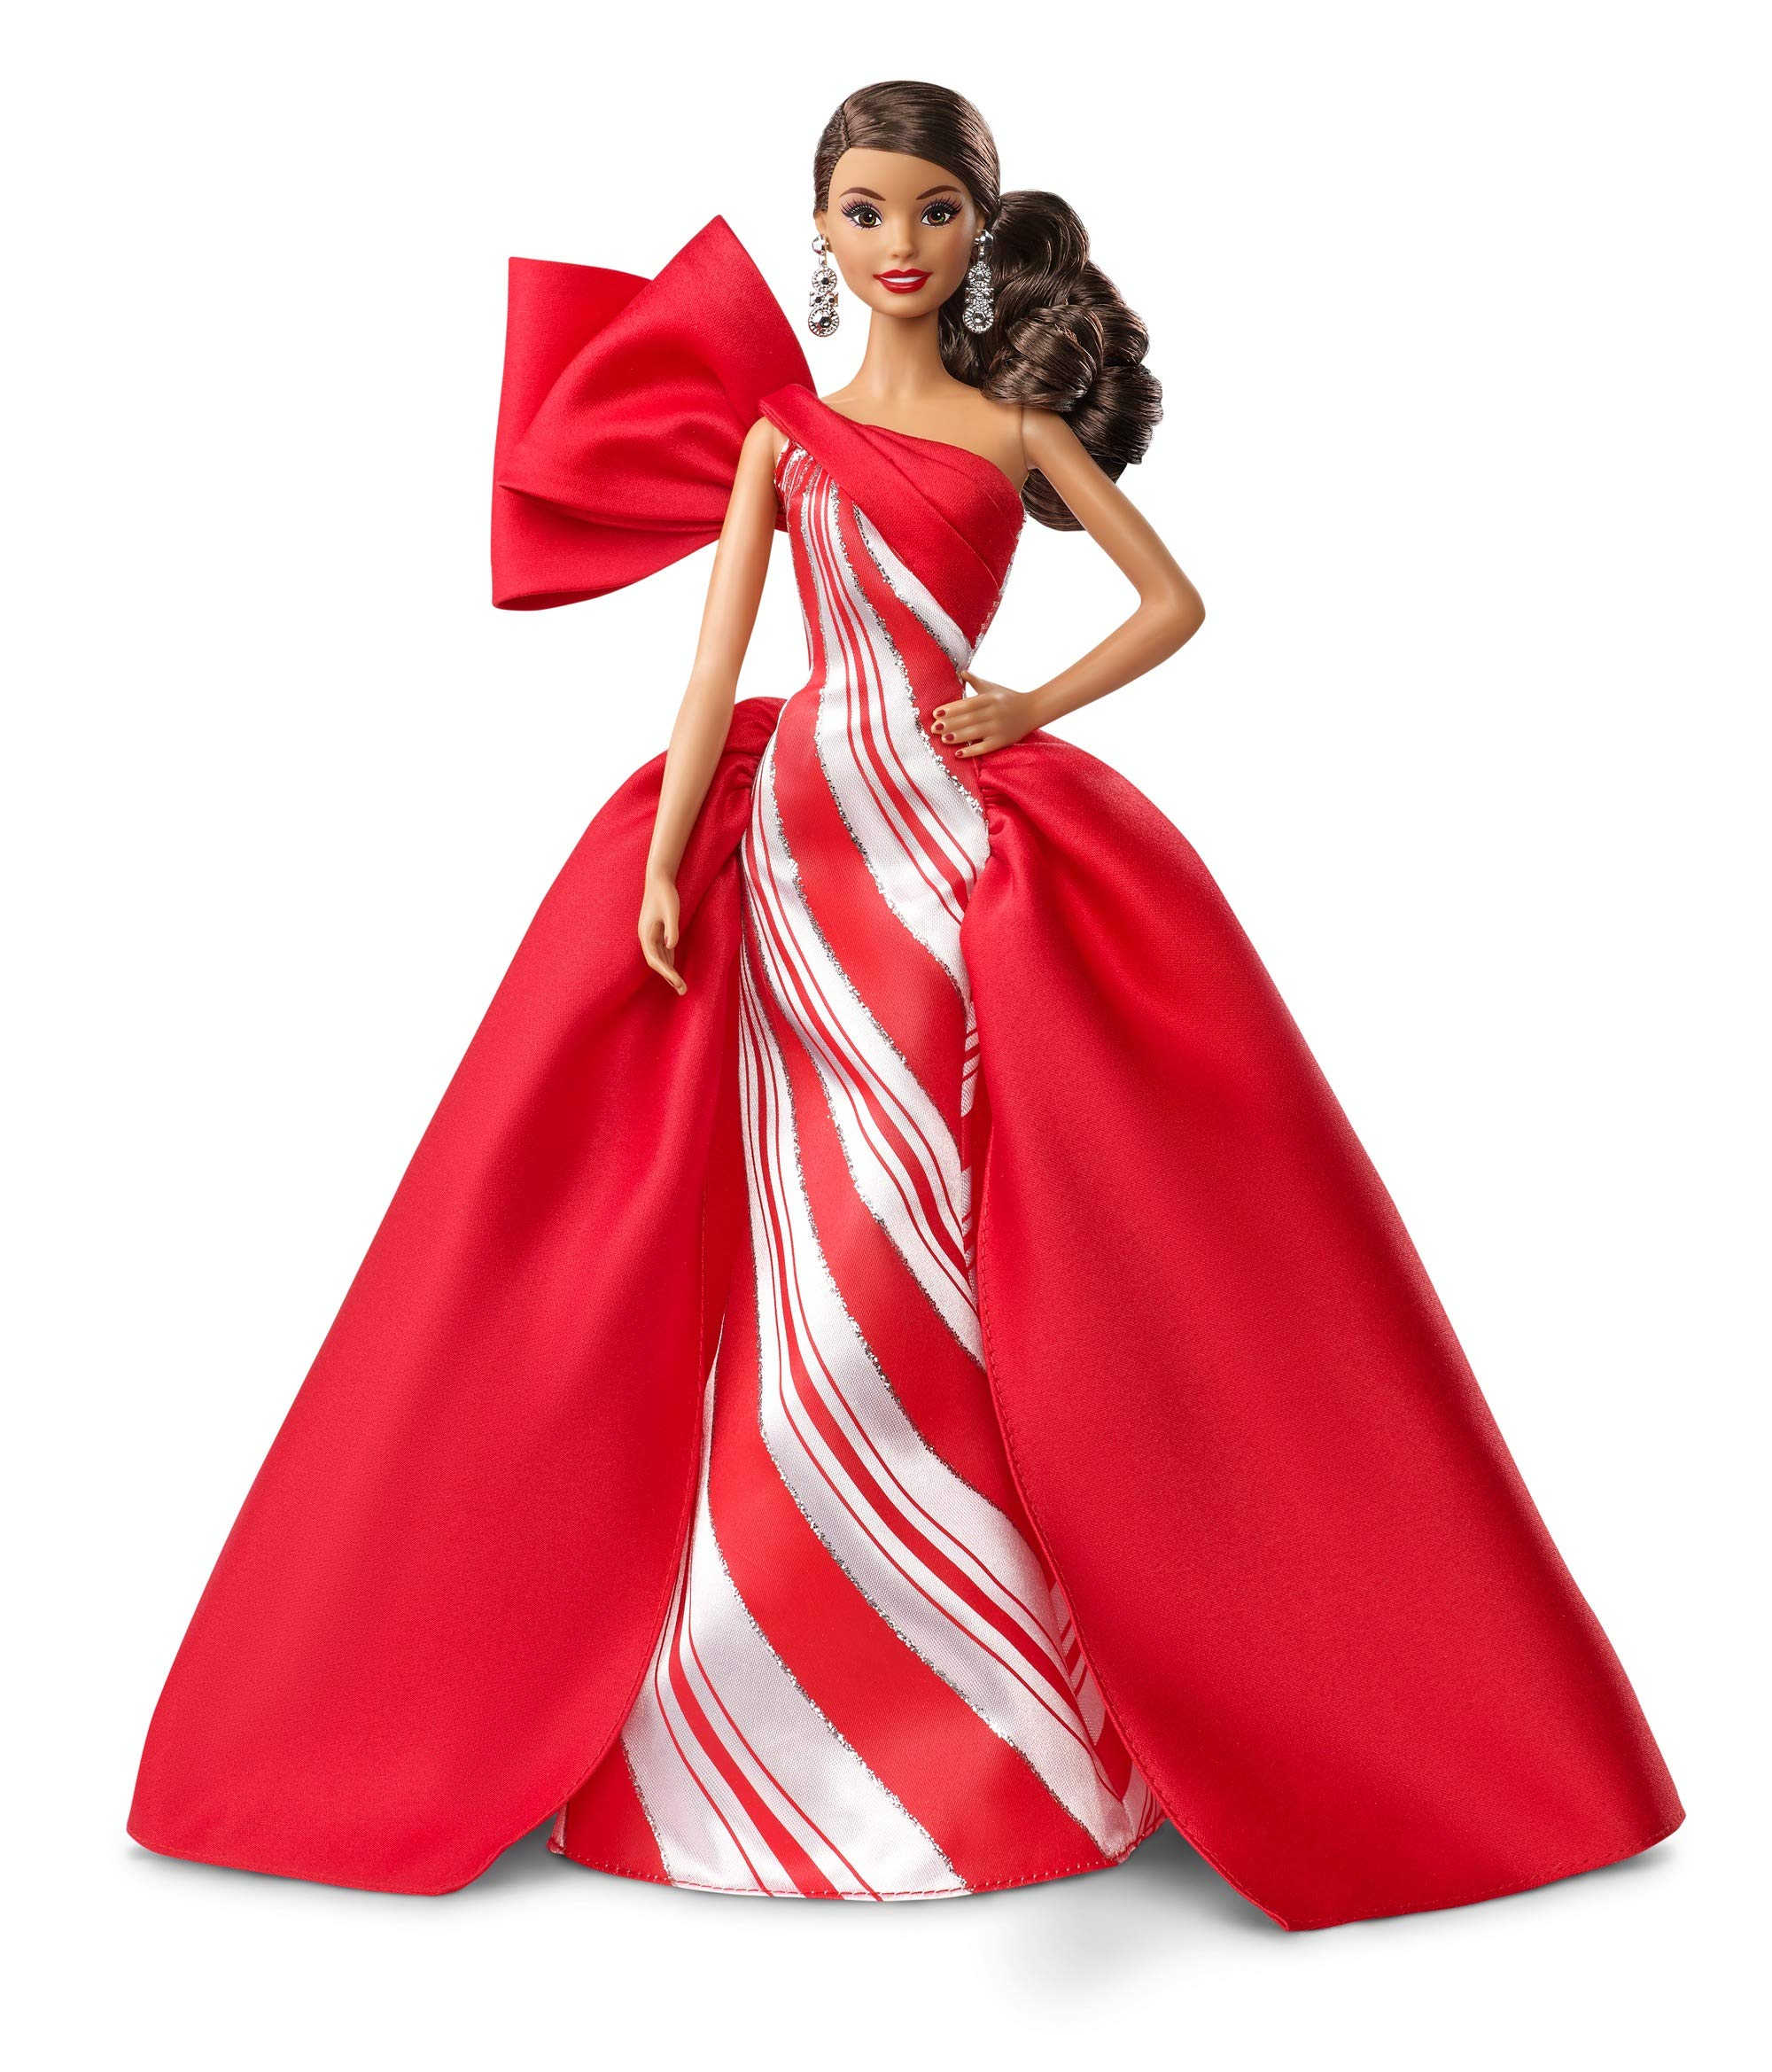 Wearing Red And White Gow Wavy Brunette 11.5-Inch Barbie ​2019 Holiday Doll